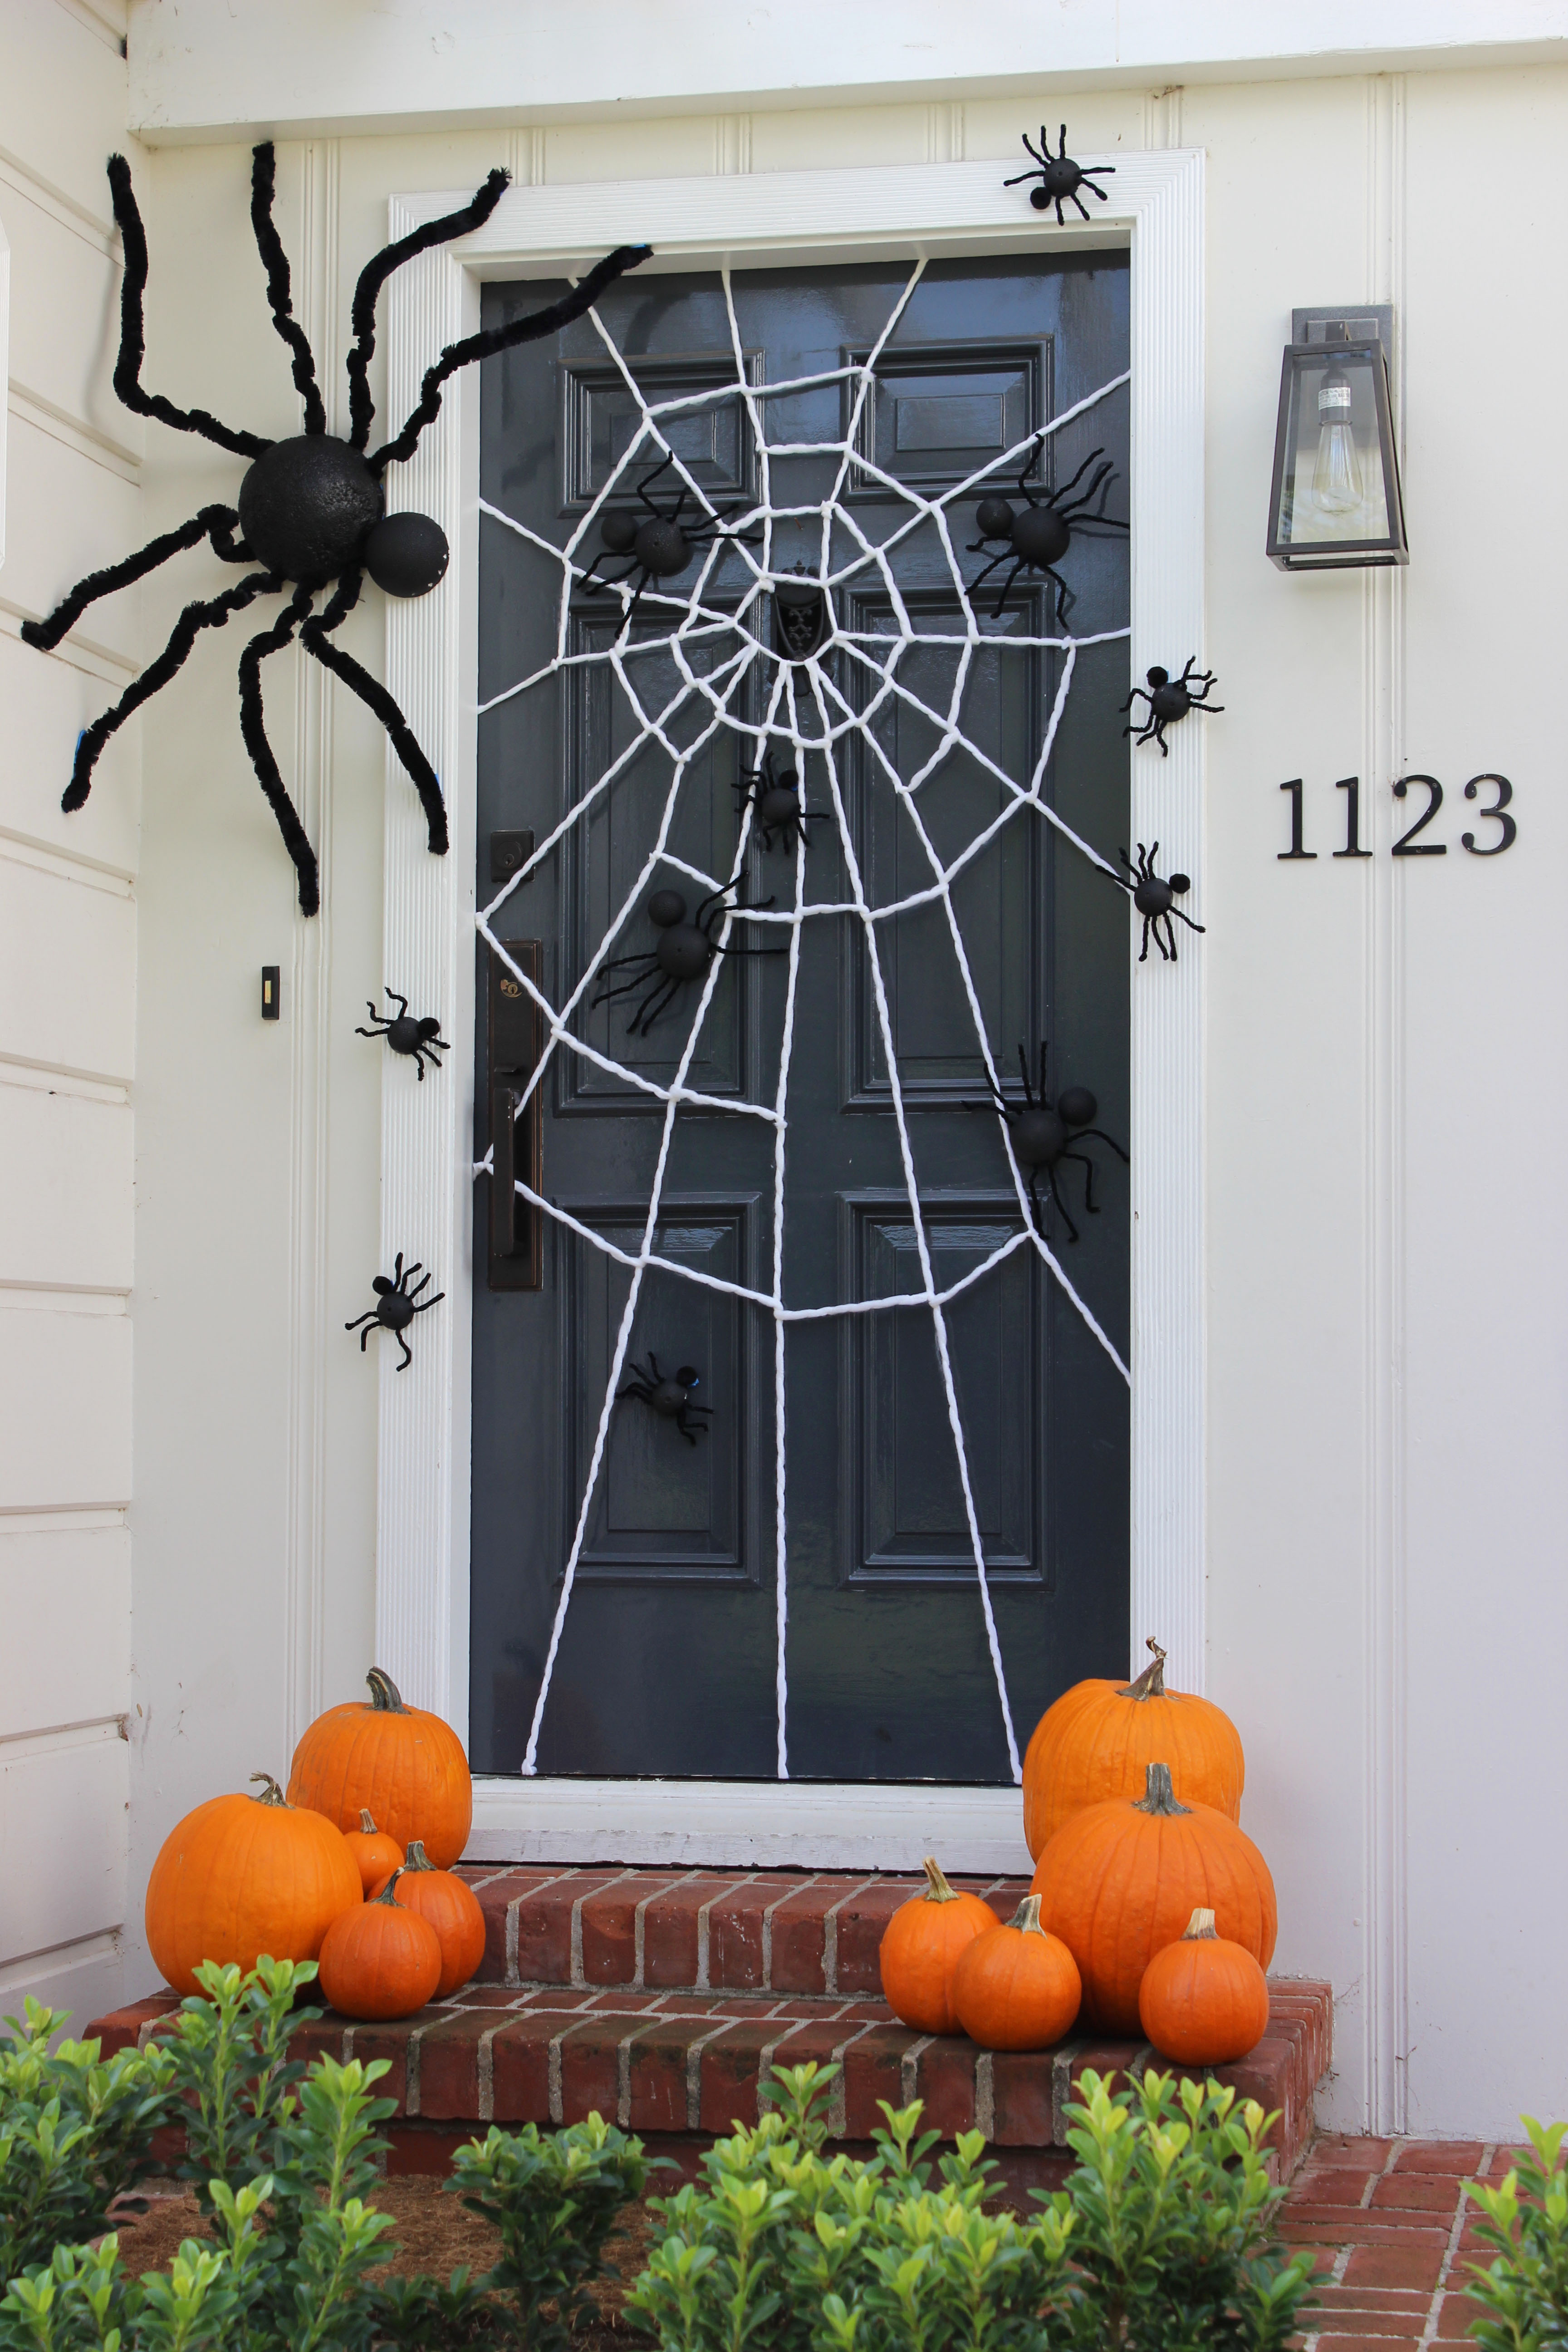 for our halloween door we created a gigantic spider web crawling with spiders large and small to create the spider web we used extra thick white yarn like